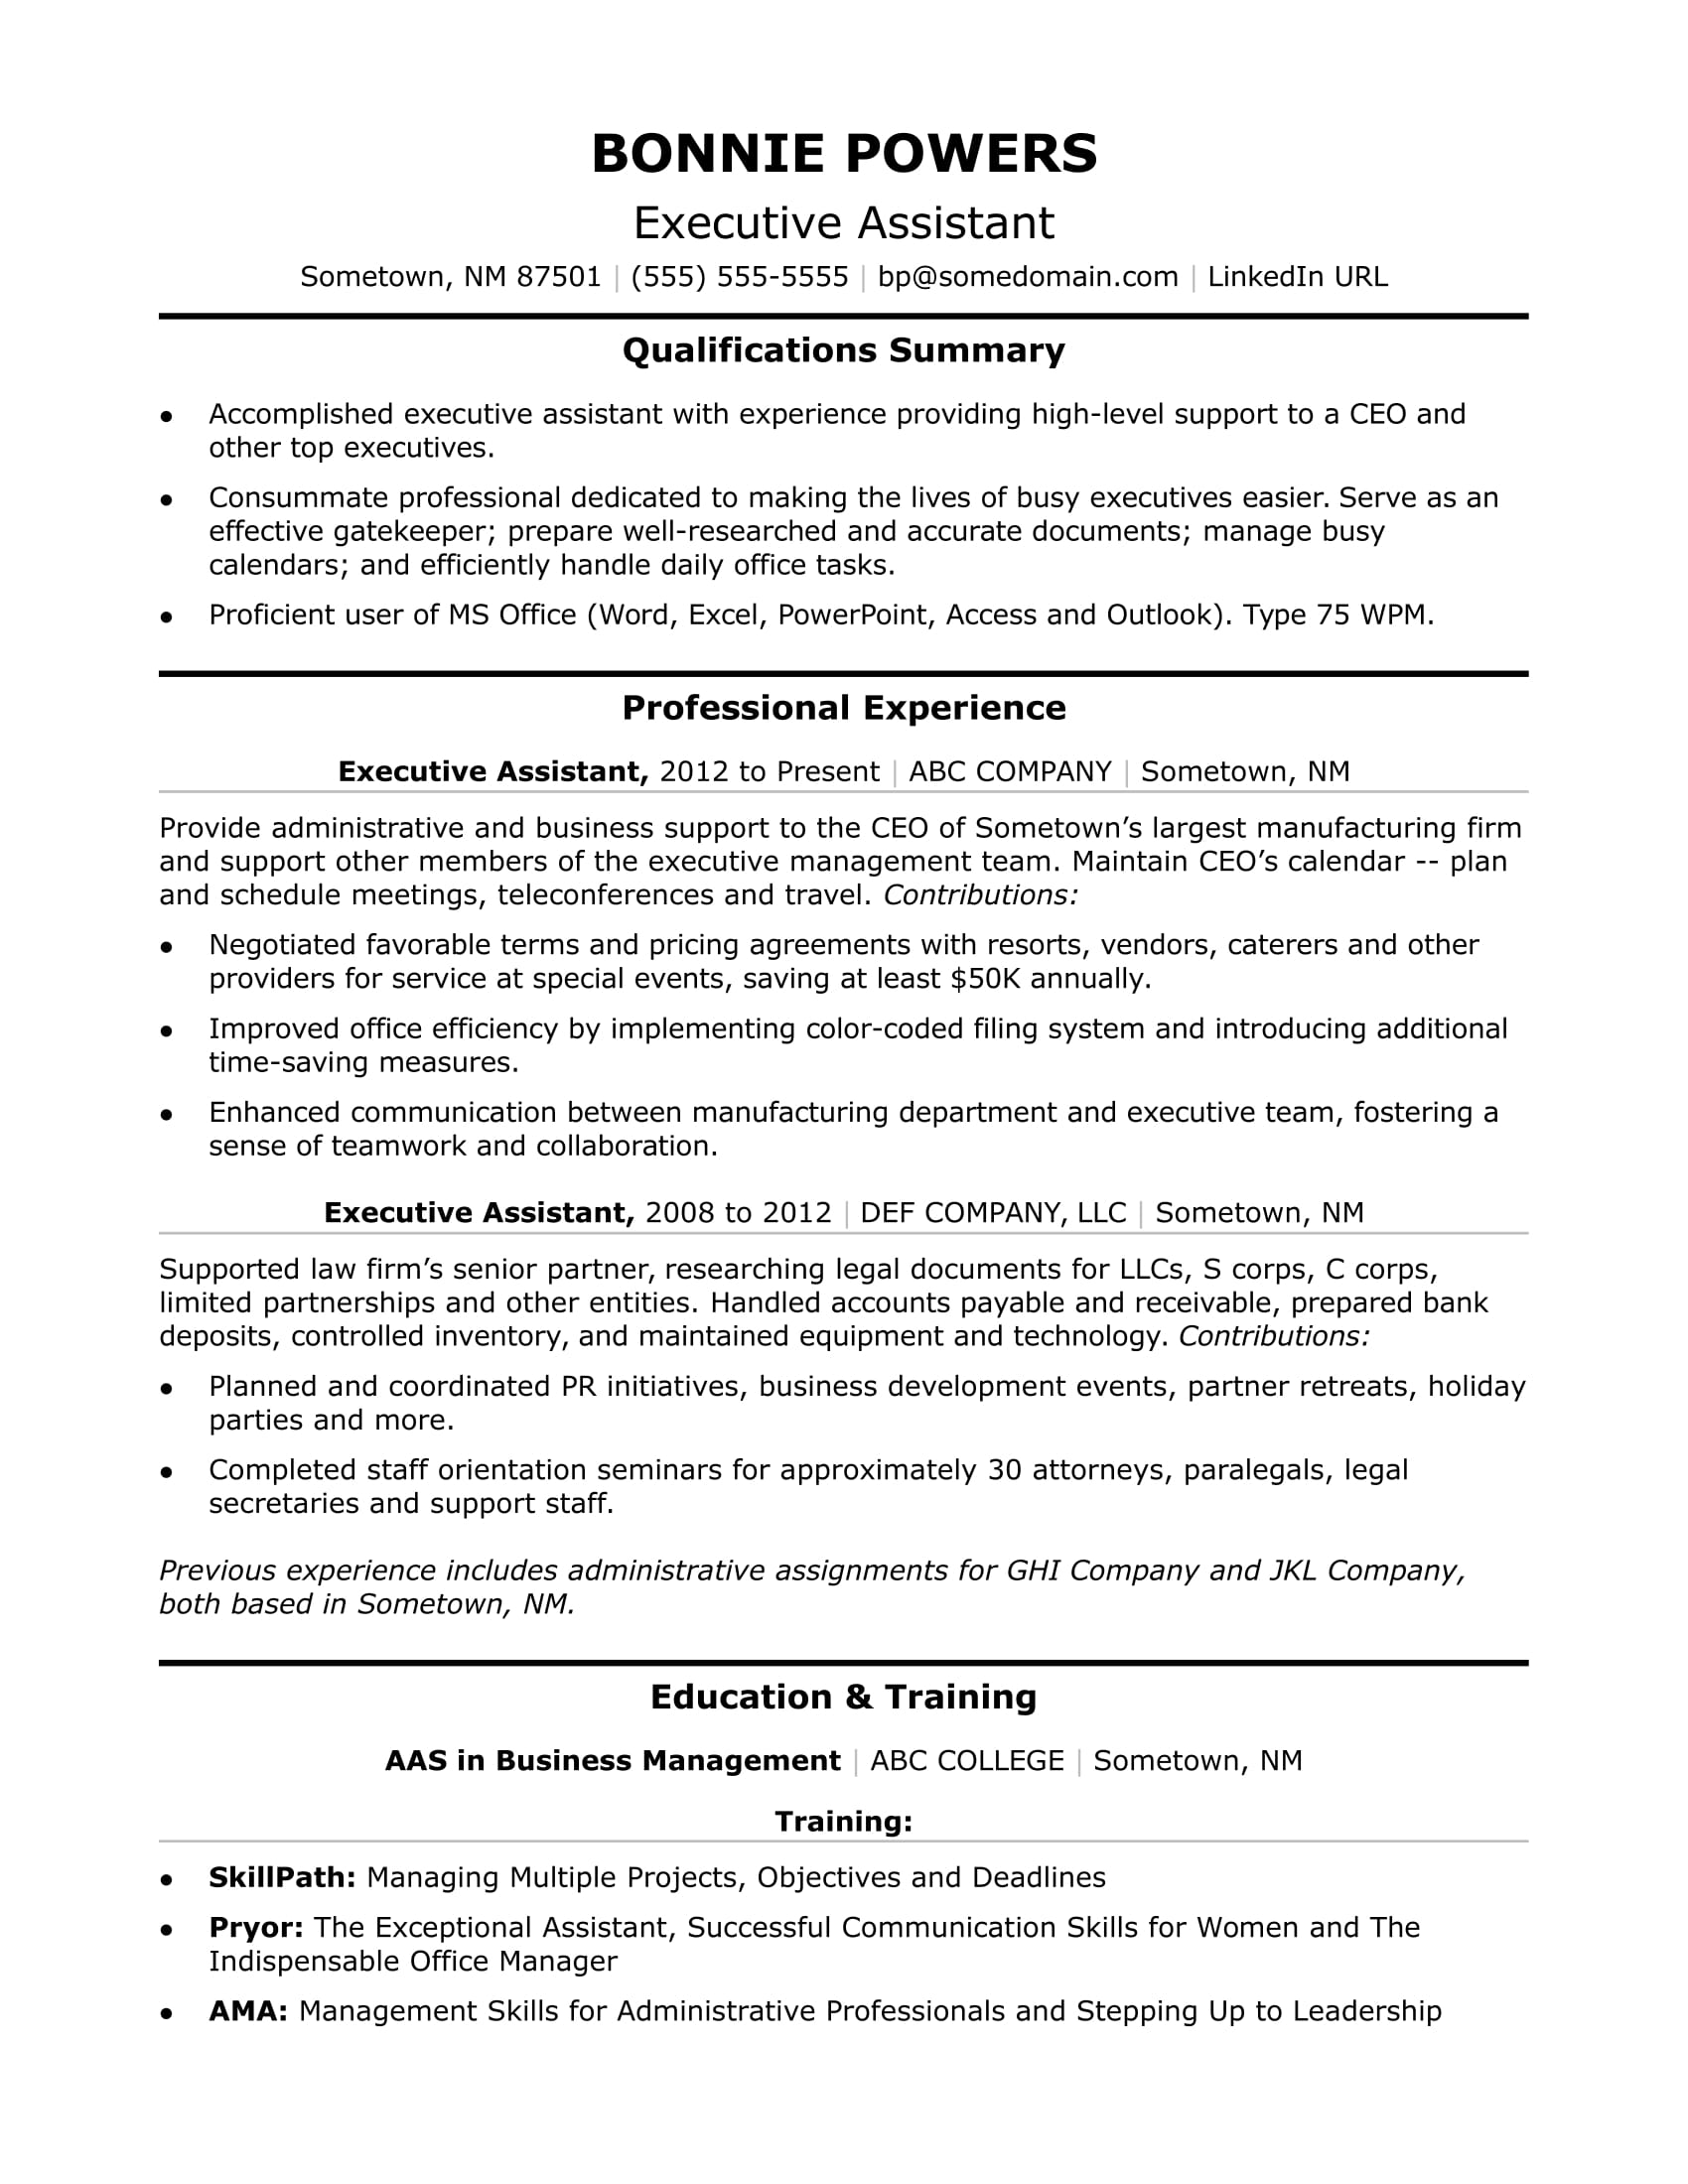 Executive Administrative Assistant Resume Sample  Administrative Assistant Resume Summary